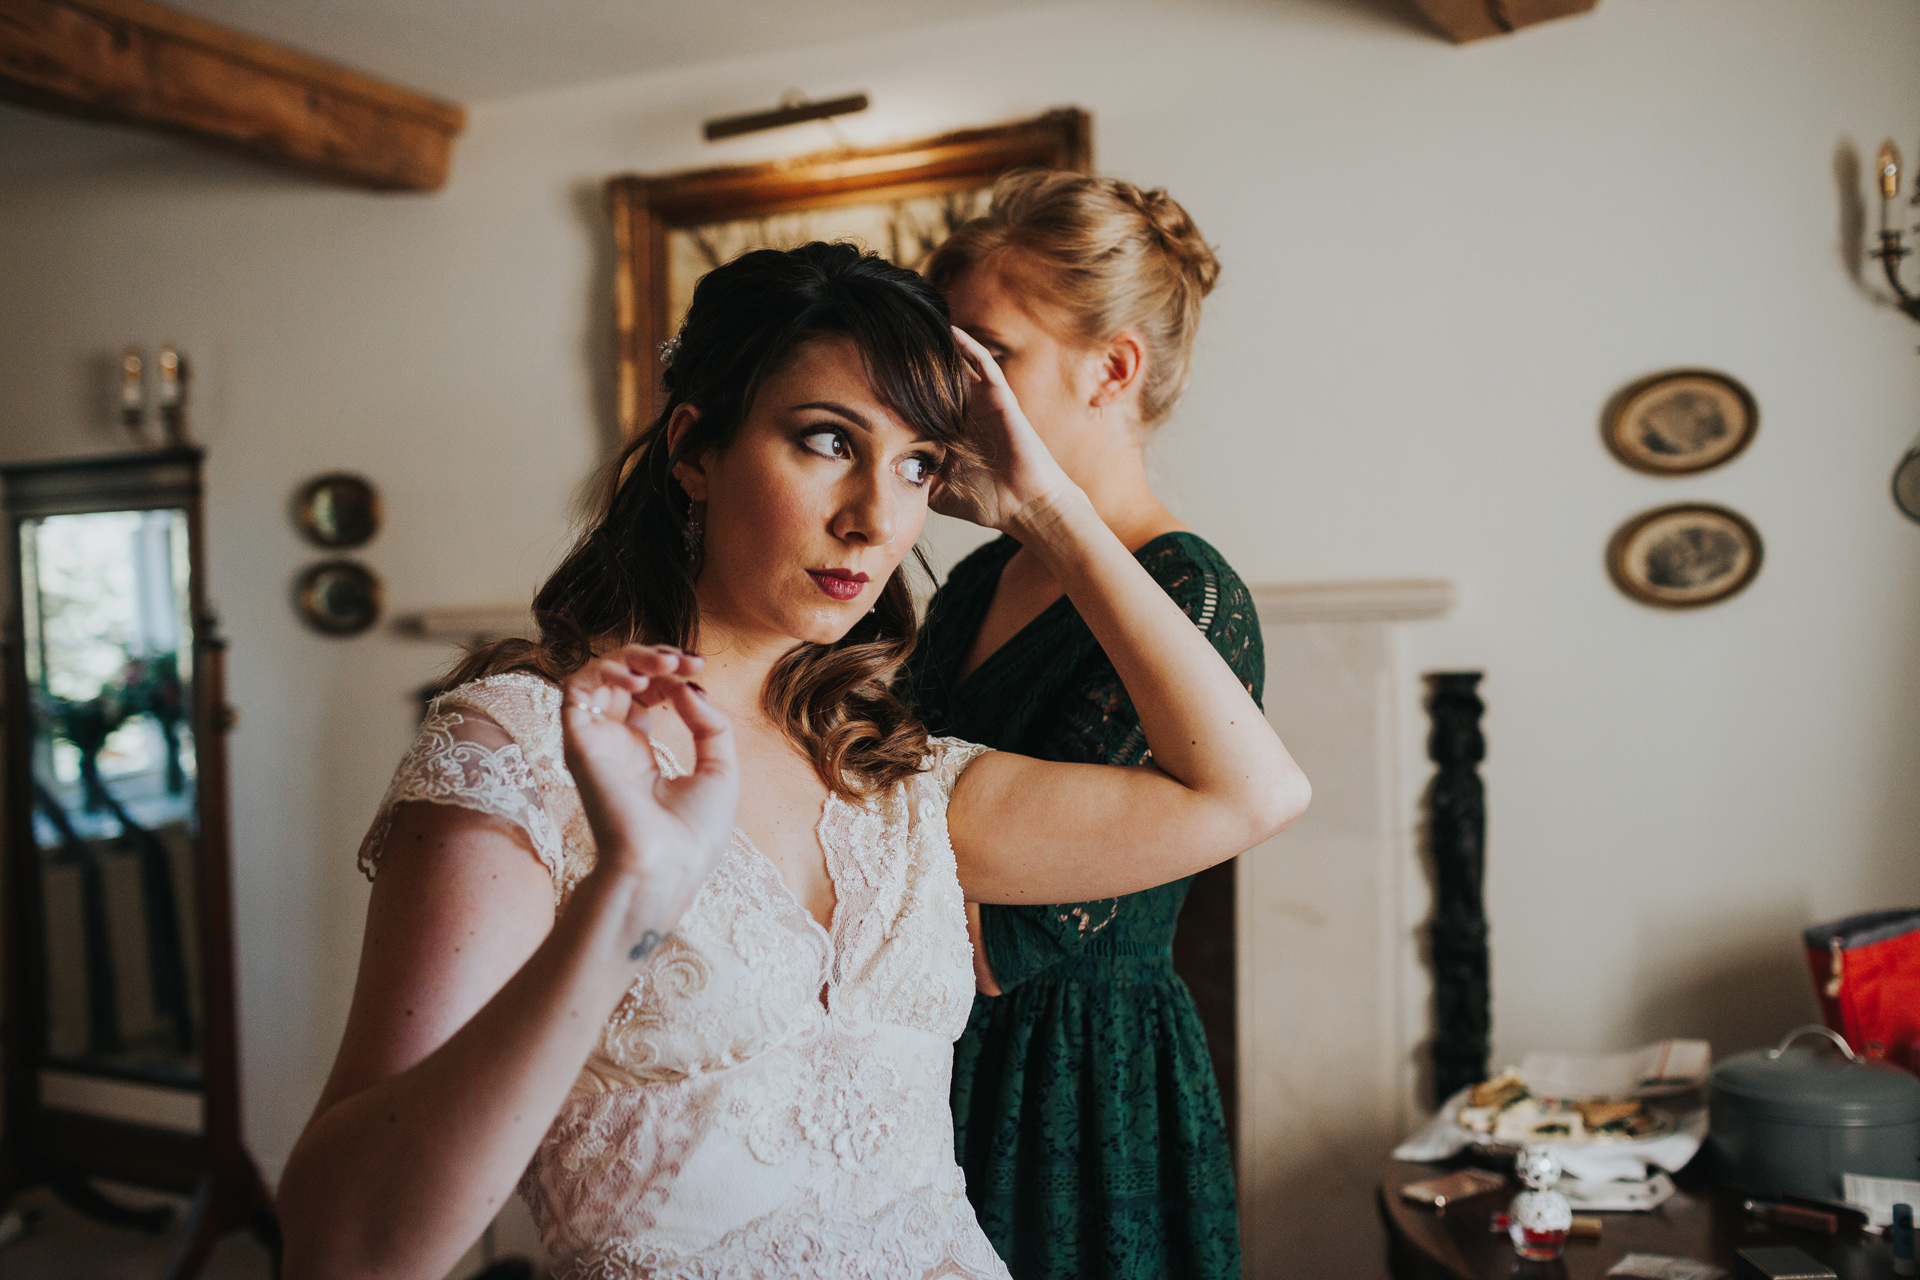 Bride checks out her hair in window light.